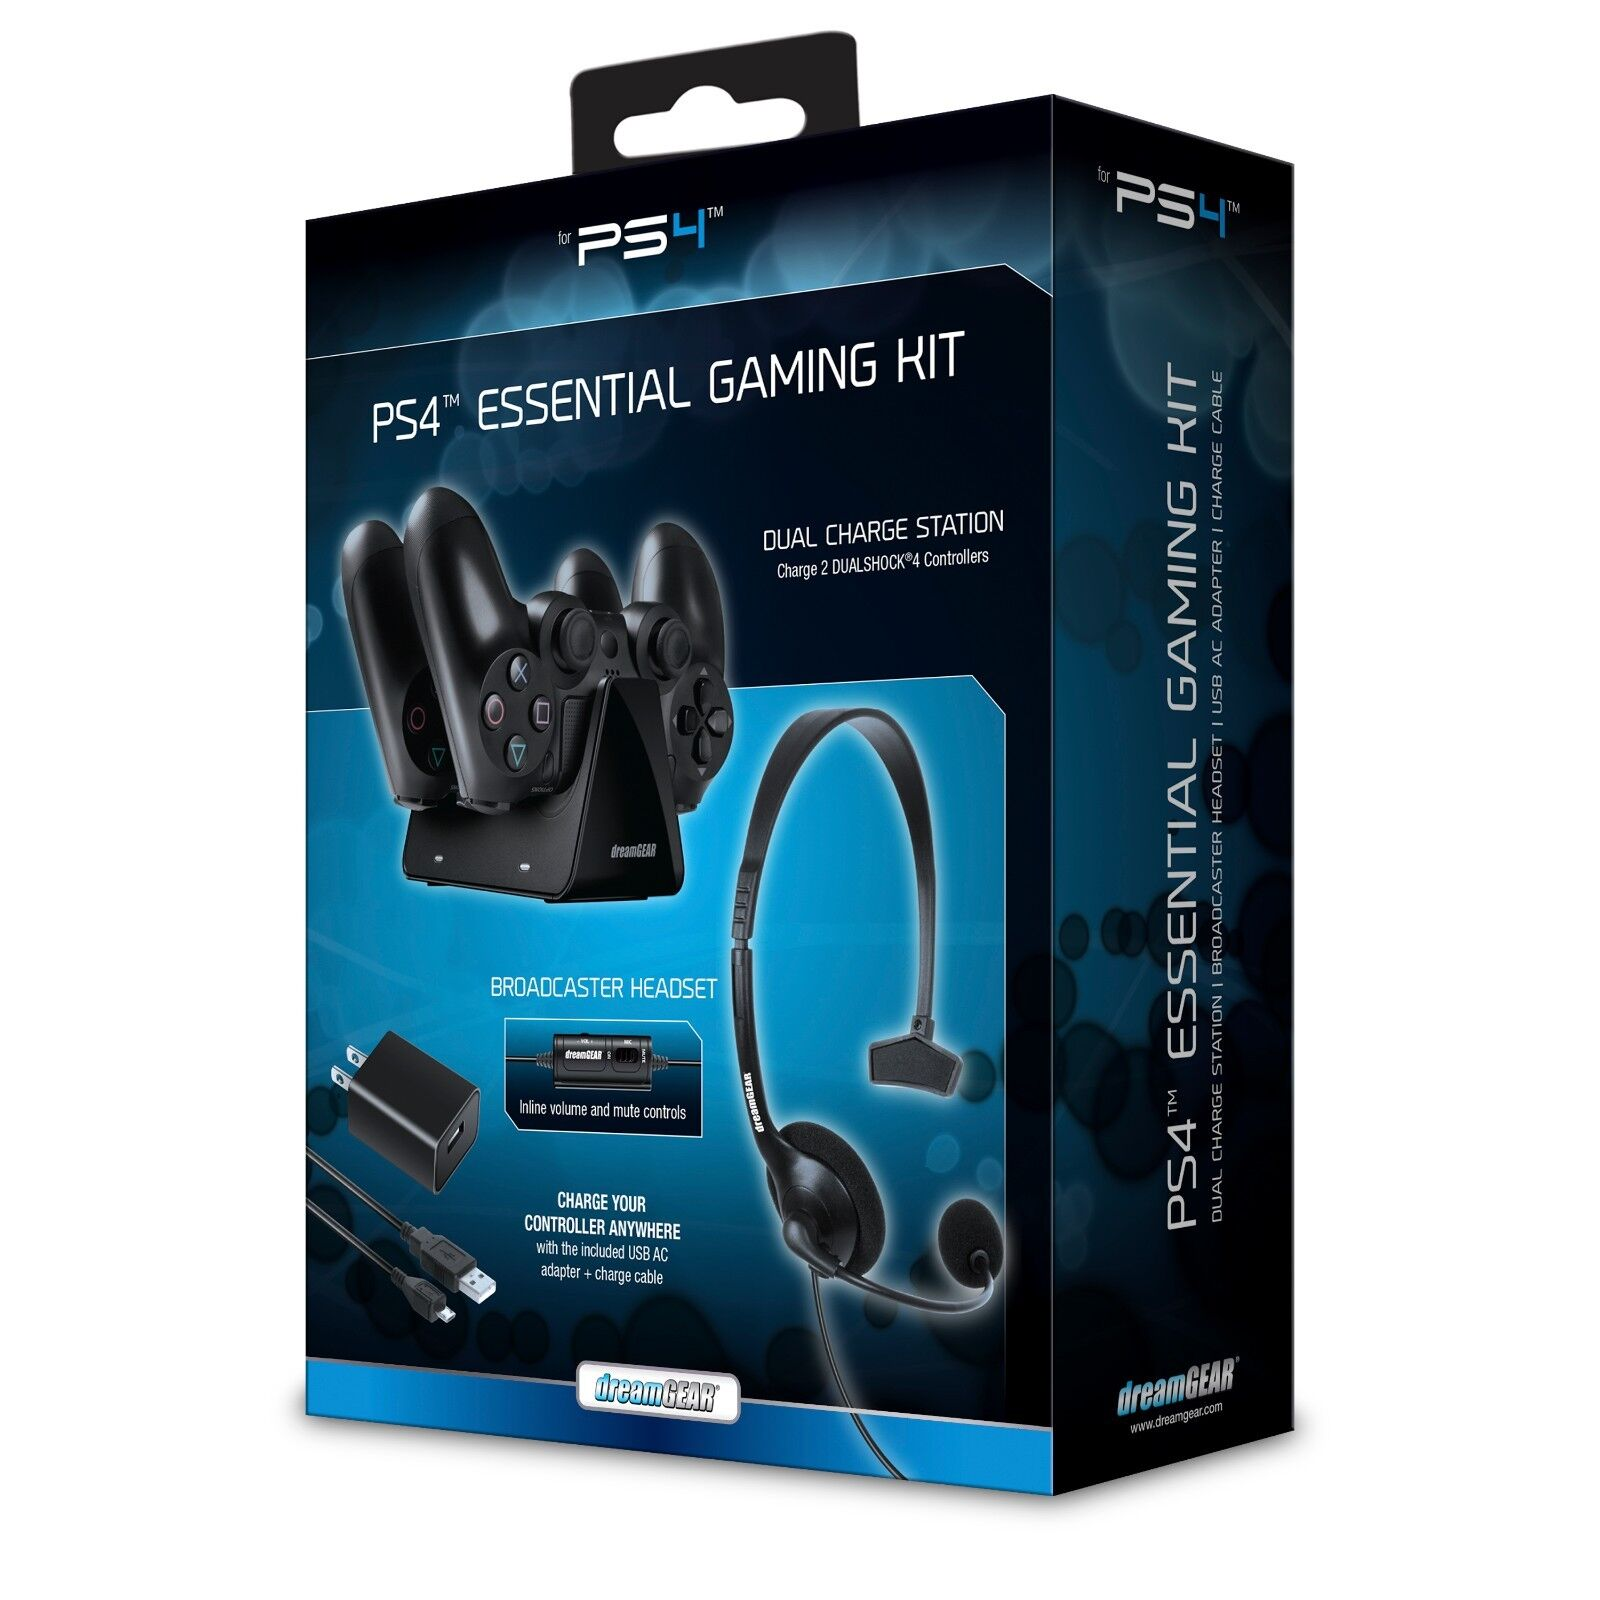 Dreamgear Essentials Gaming Starter Kit For Ps4 Headset